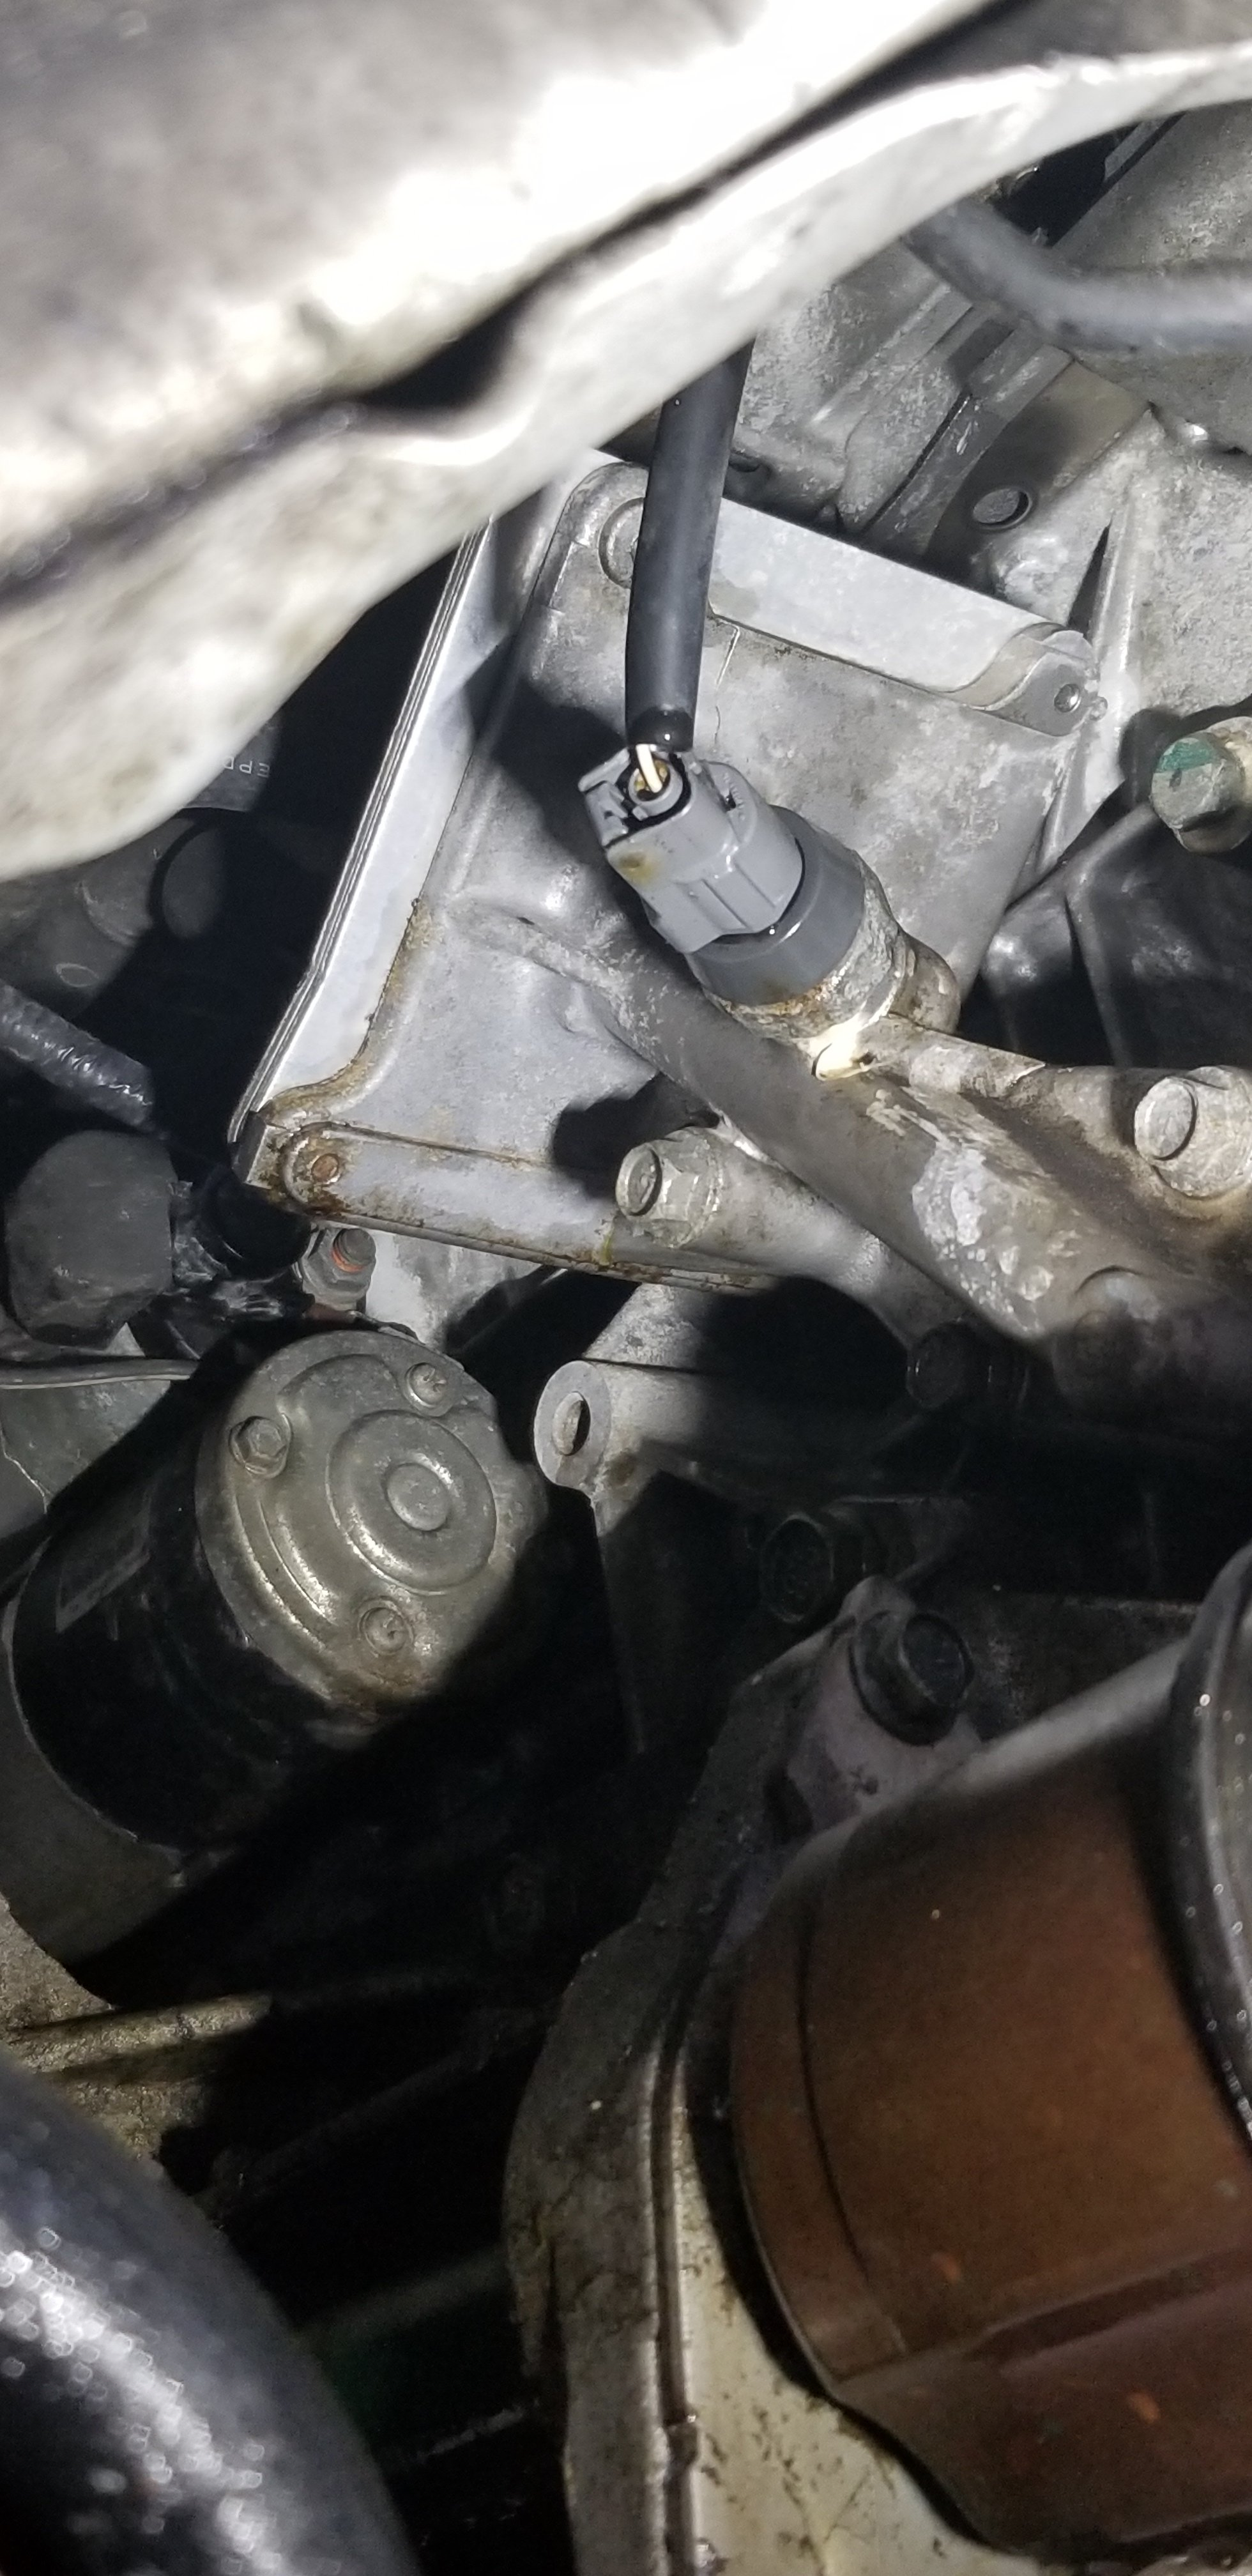 2010 Nissan rogue SL AWD 4 cyclinder leaking oil from the